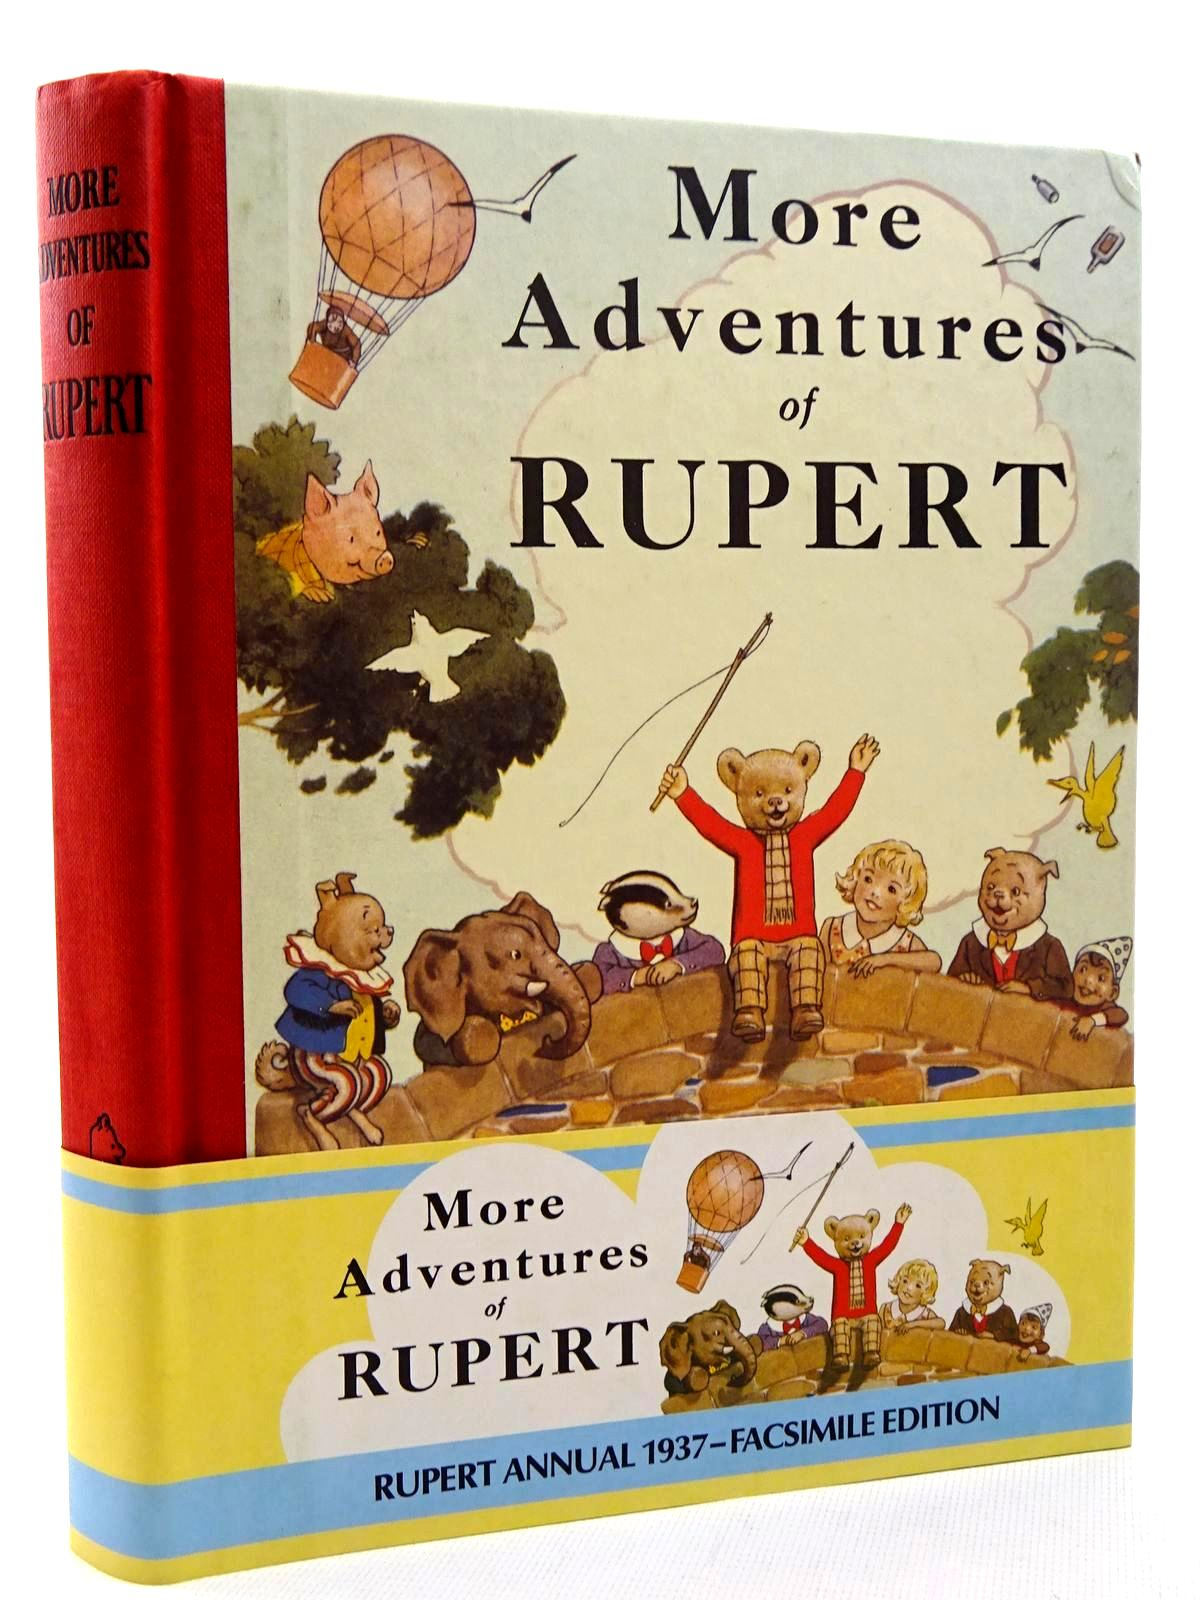 Photo of RUPERT ANNUAL 1937 (FACSIMILE) - MORE ADVENTURES OF RUPERT written by Bestall, Alfred illustrated by Bestall, Alfred published by Express Newspapers Ltd. (STOCK CODE: 2124731)  for sale by Stella & Rose's Books